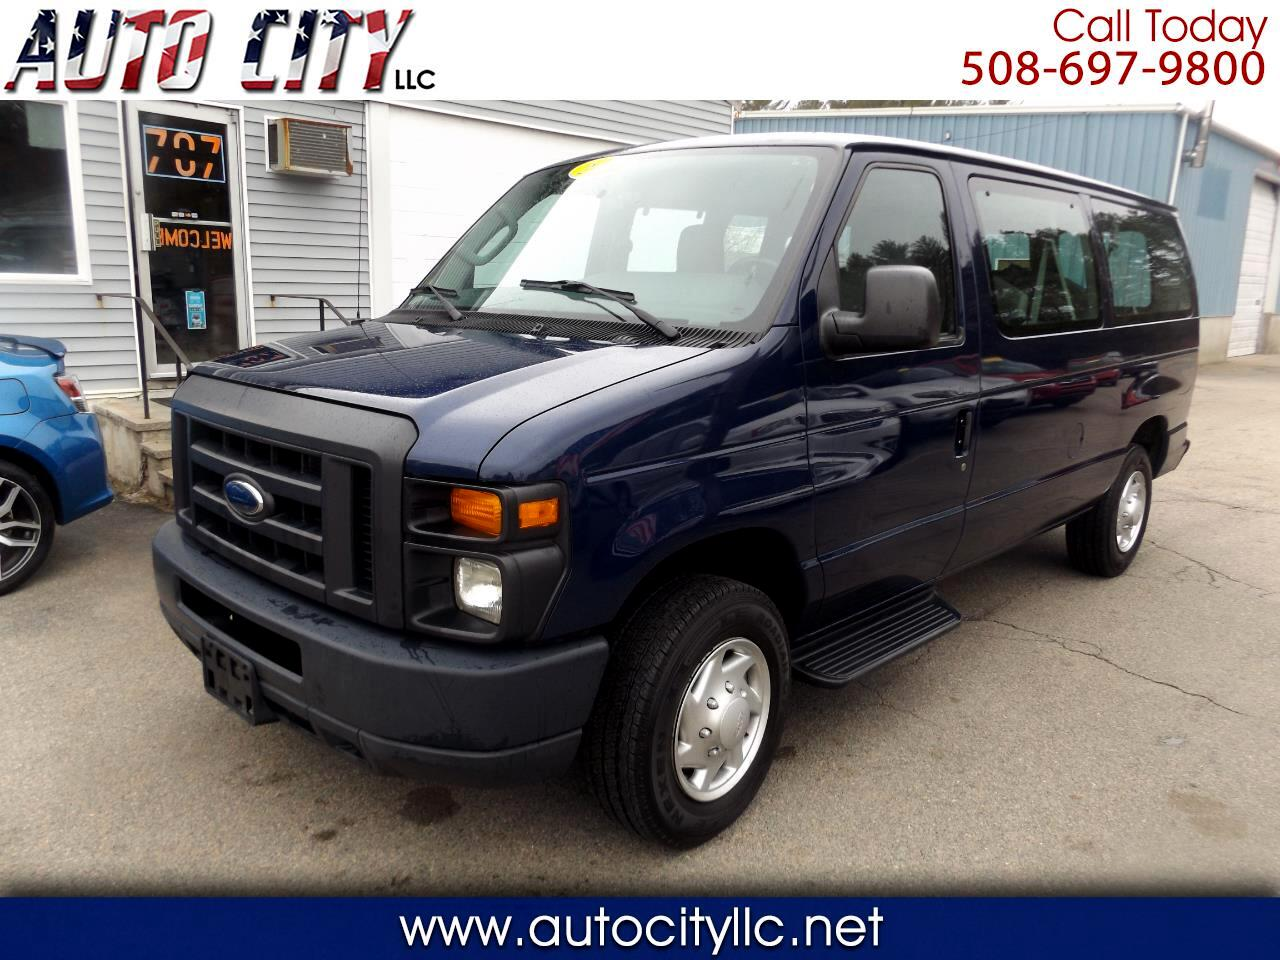 Ford Econoline Wagon E-150 XL 2013